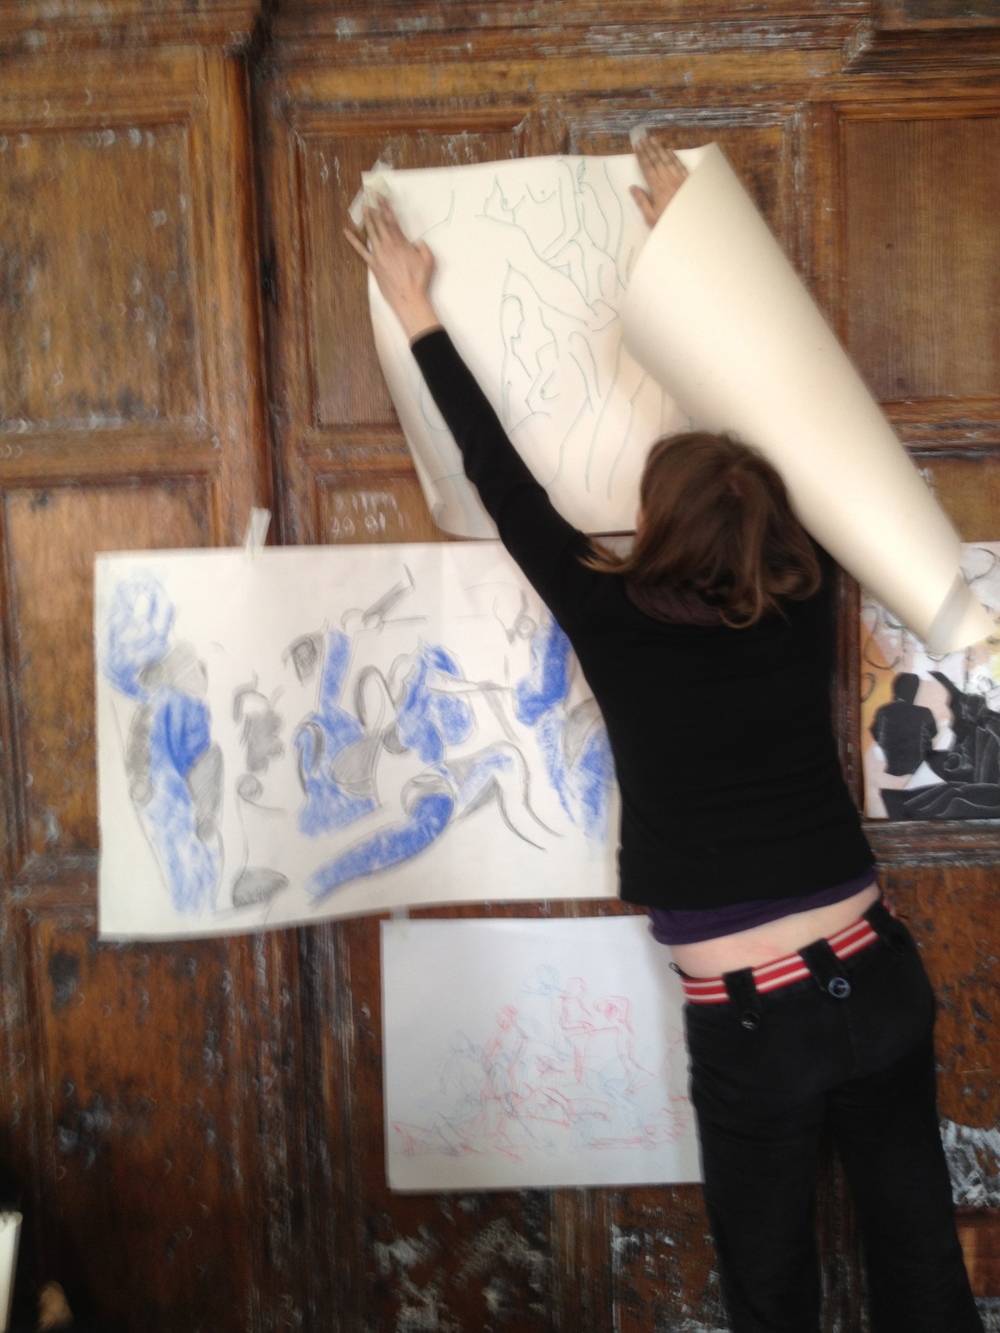 An artist attending a London Drawing event at the Battersea Arts Centre tapes one of her drawings to the wall.